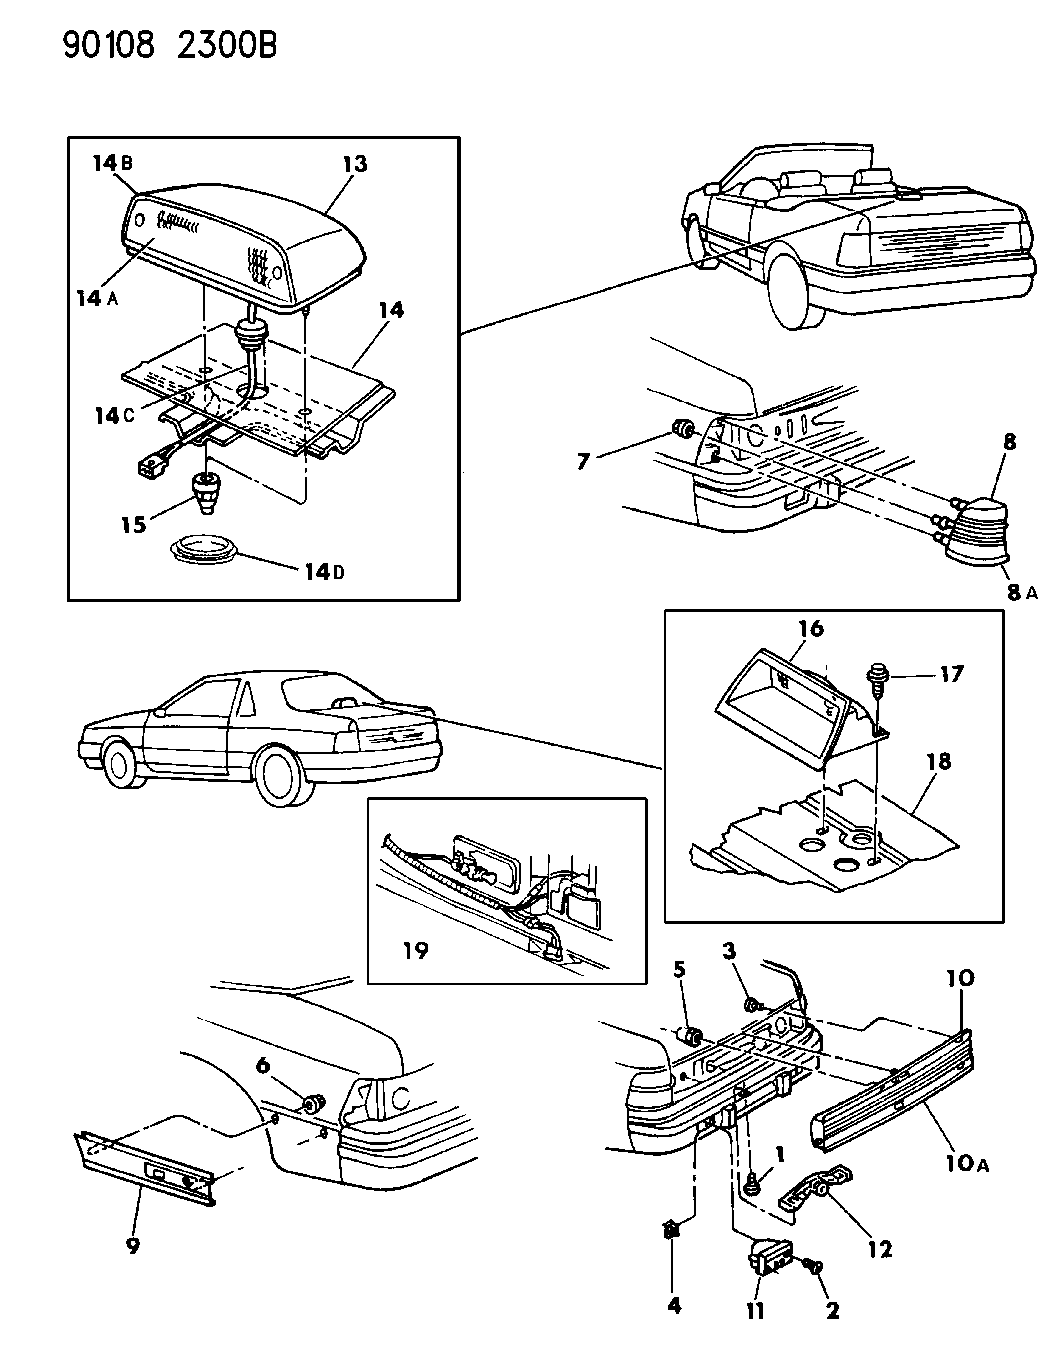 C additionally Resource T D   S L   R Ab C Ee C Df Afddc C Be D Ac A Ee C B also C F in addition Chrysler Minivan Fuse Box Diagram together with C Ac. on 1990 chrysler lebaron convertible wiring diagram